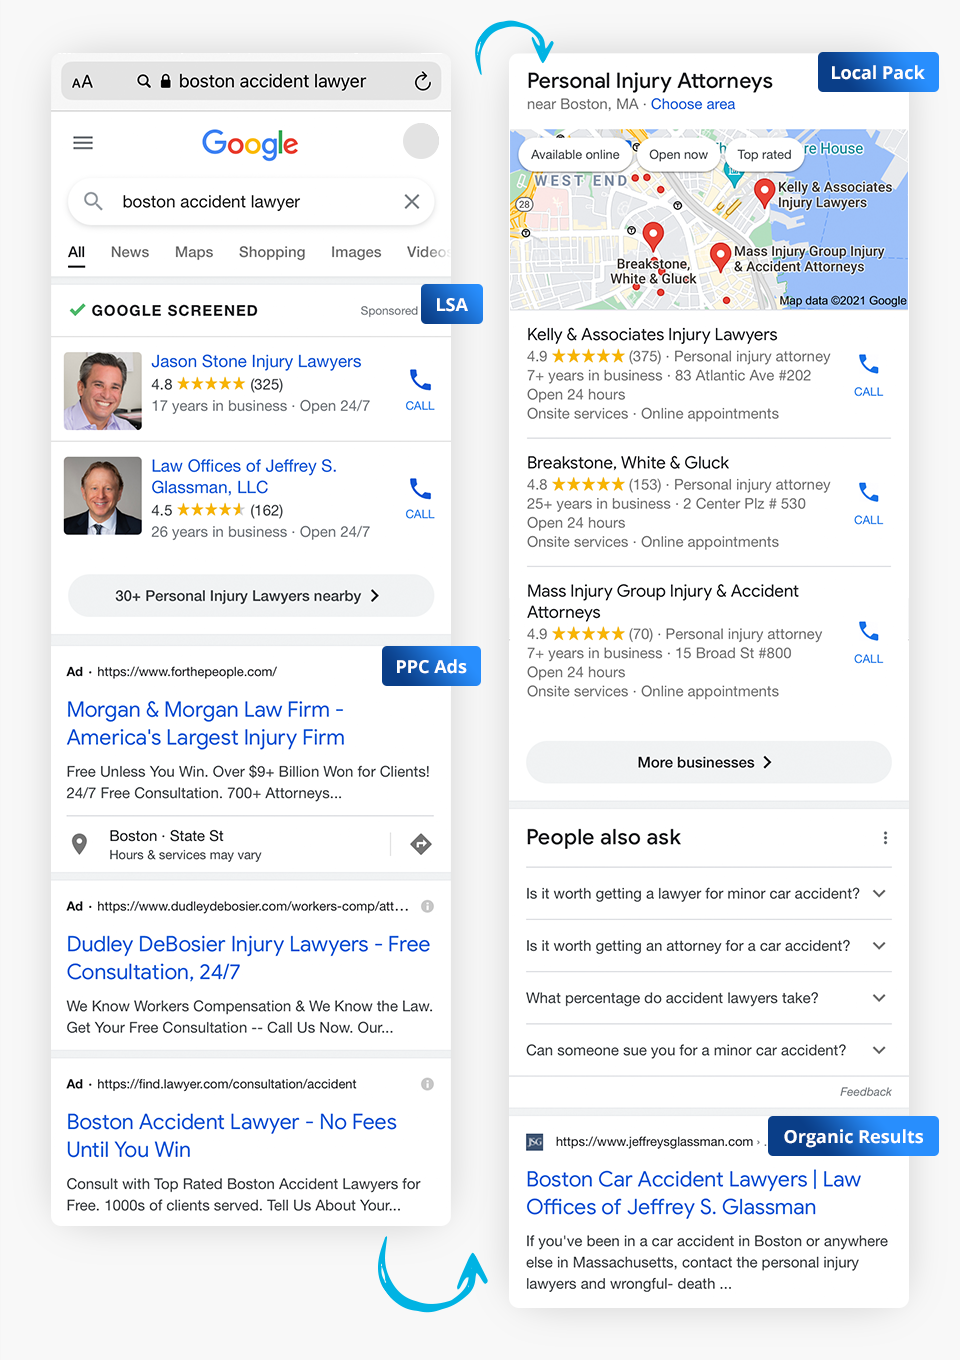 Mobile - Search engine results page